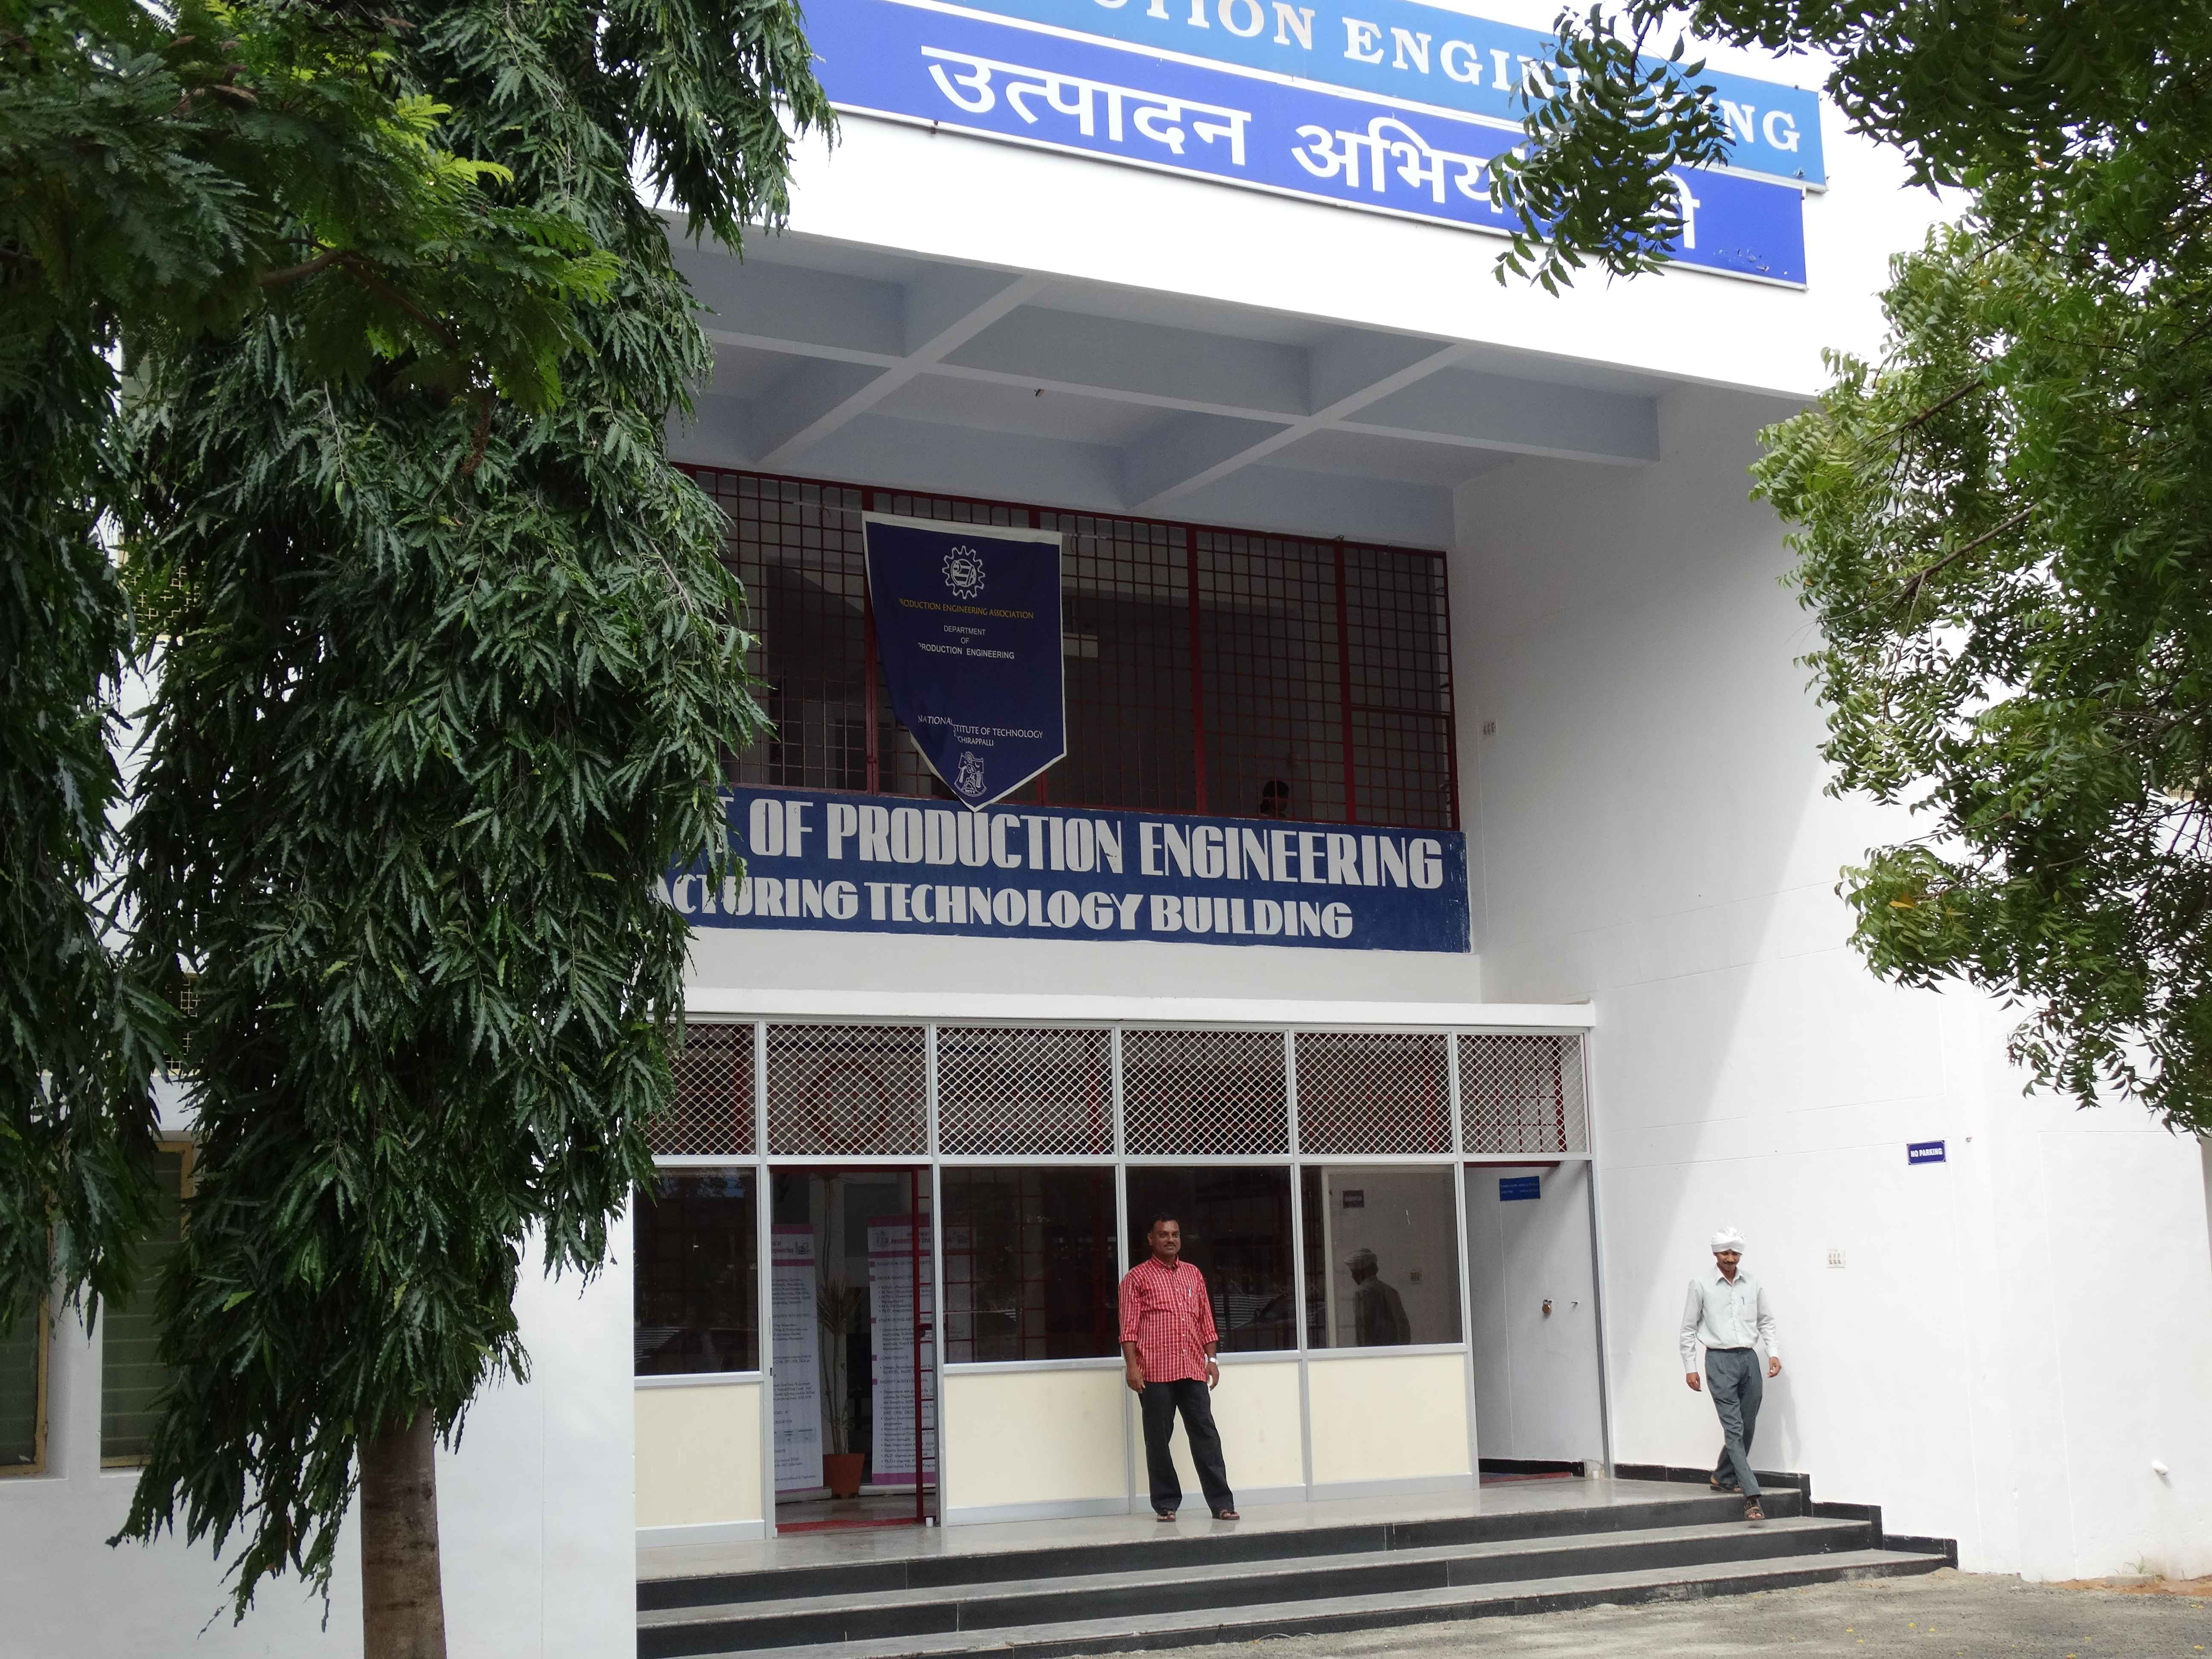 Department of Production Engineering